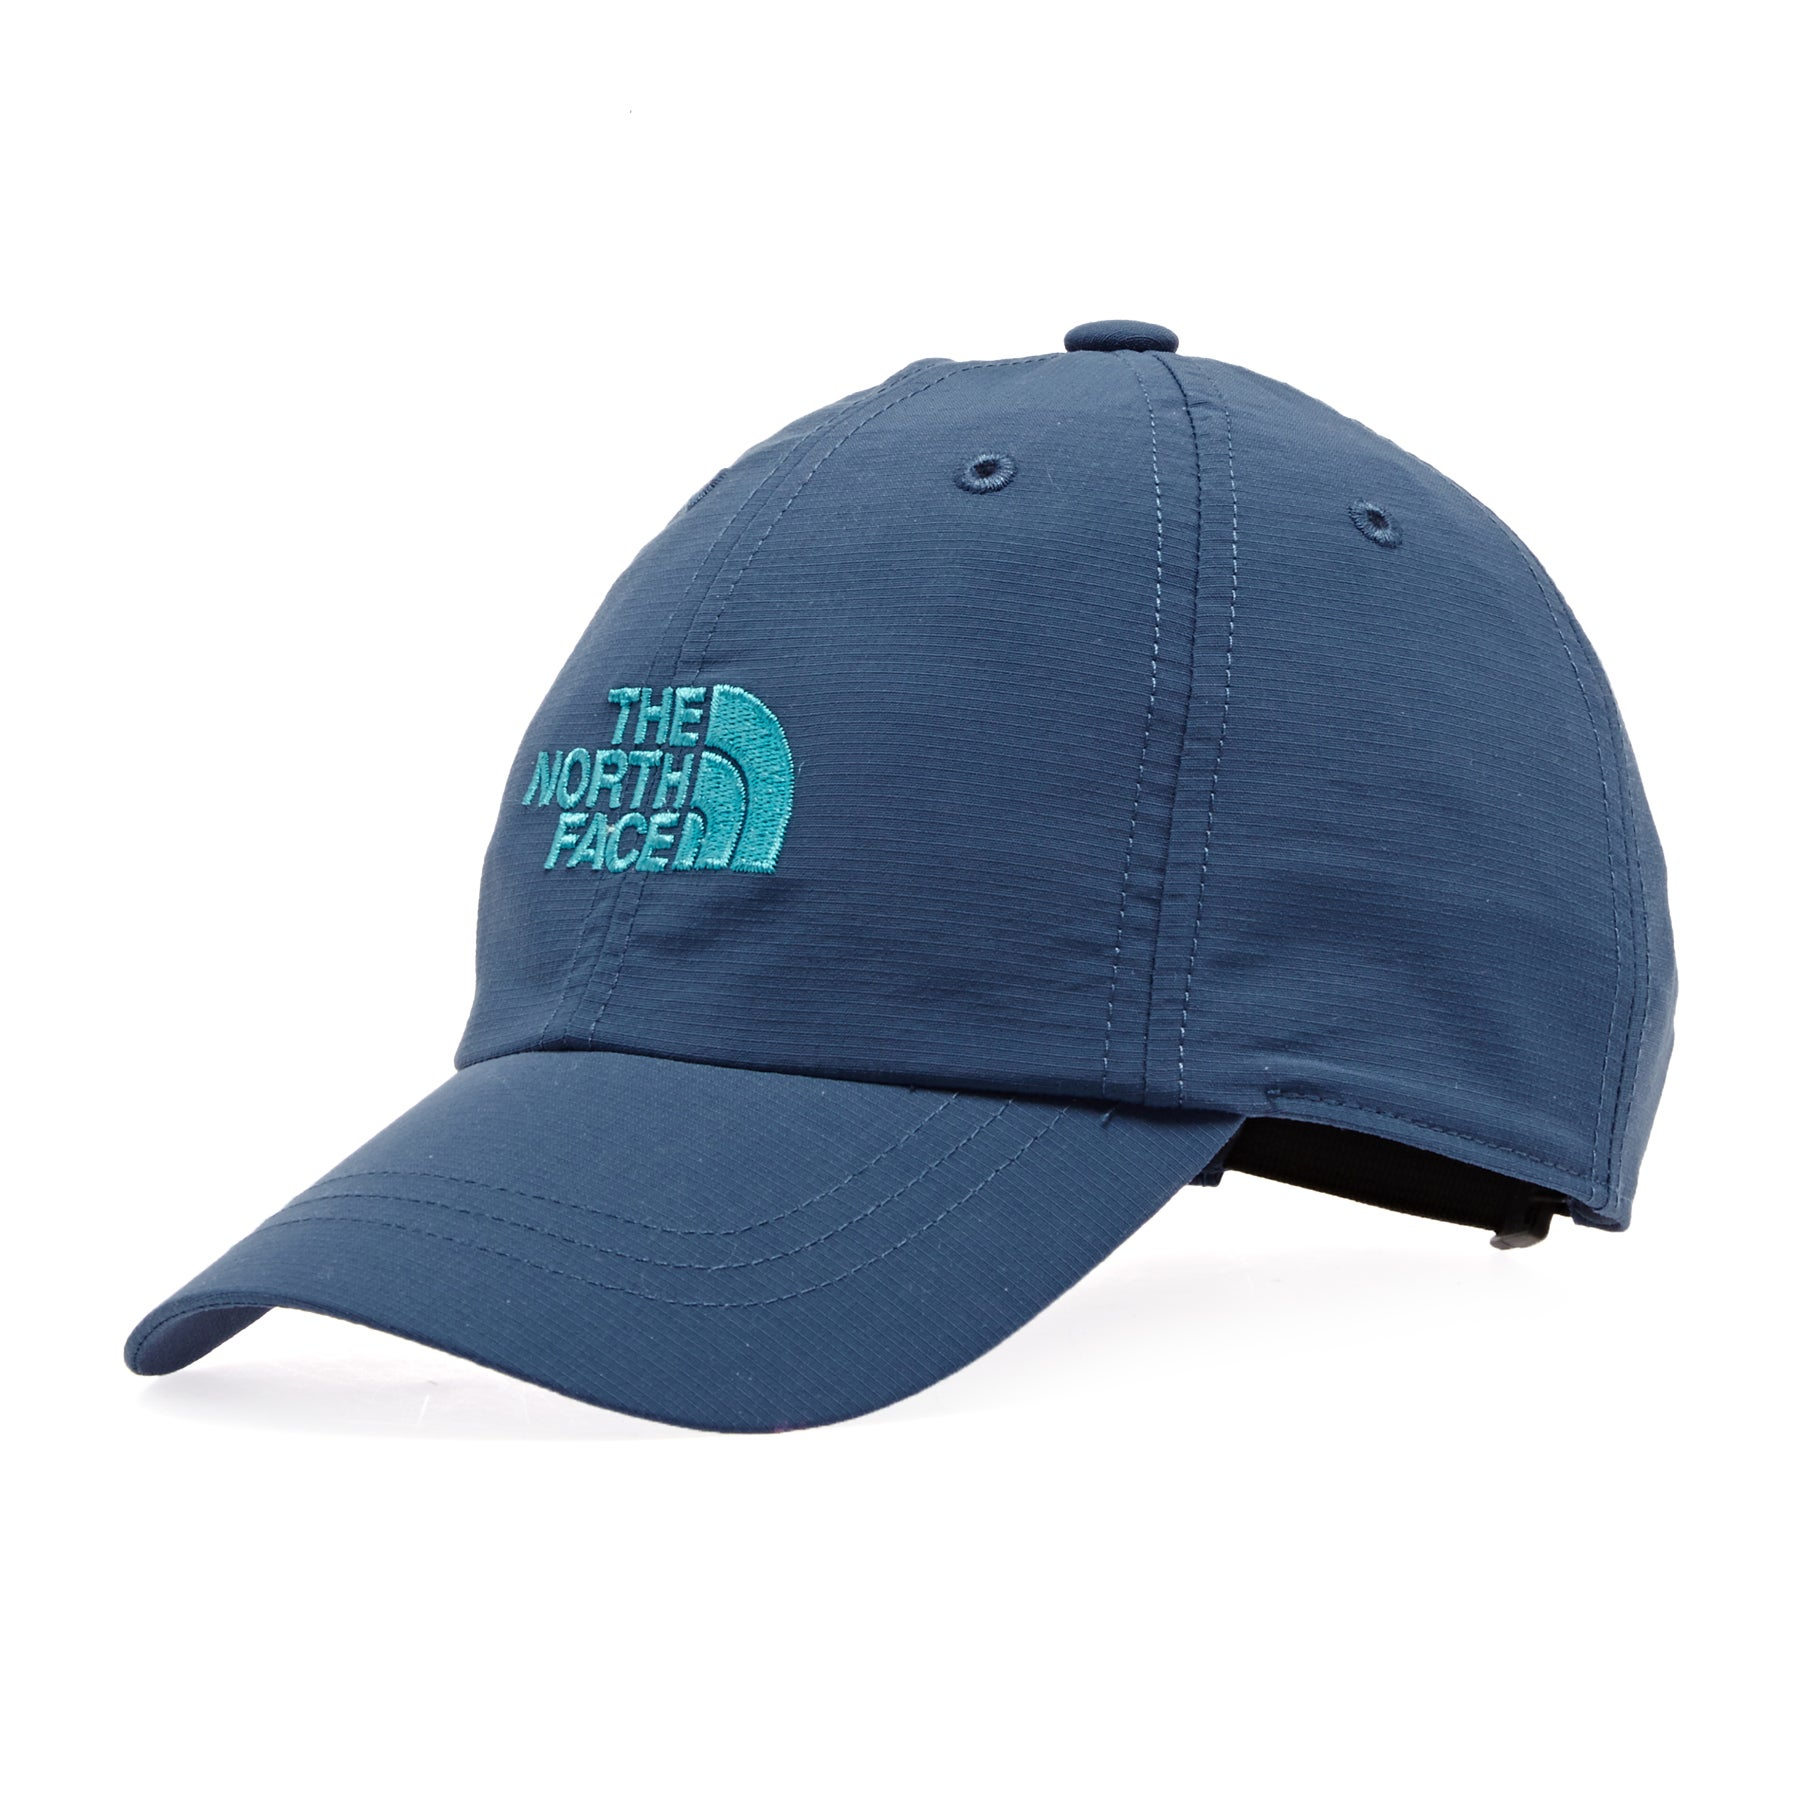 North Face Horizon Kids Cap - Shady Blue Caribbean Sea